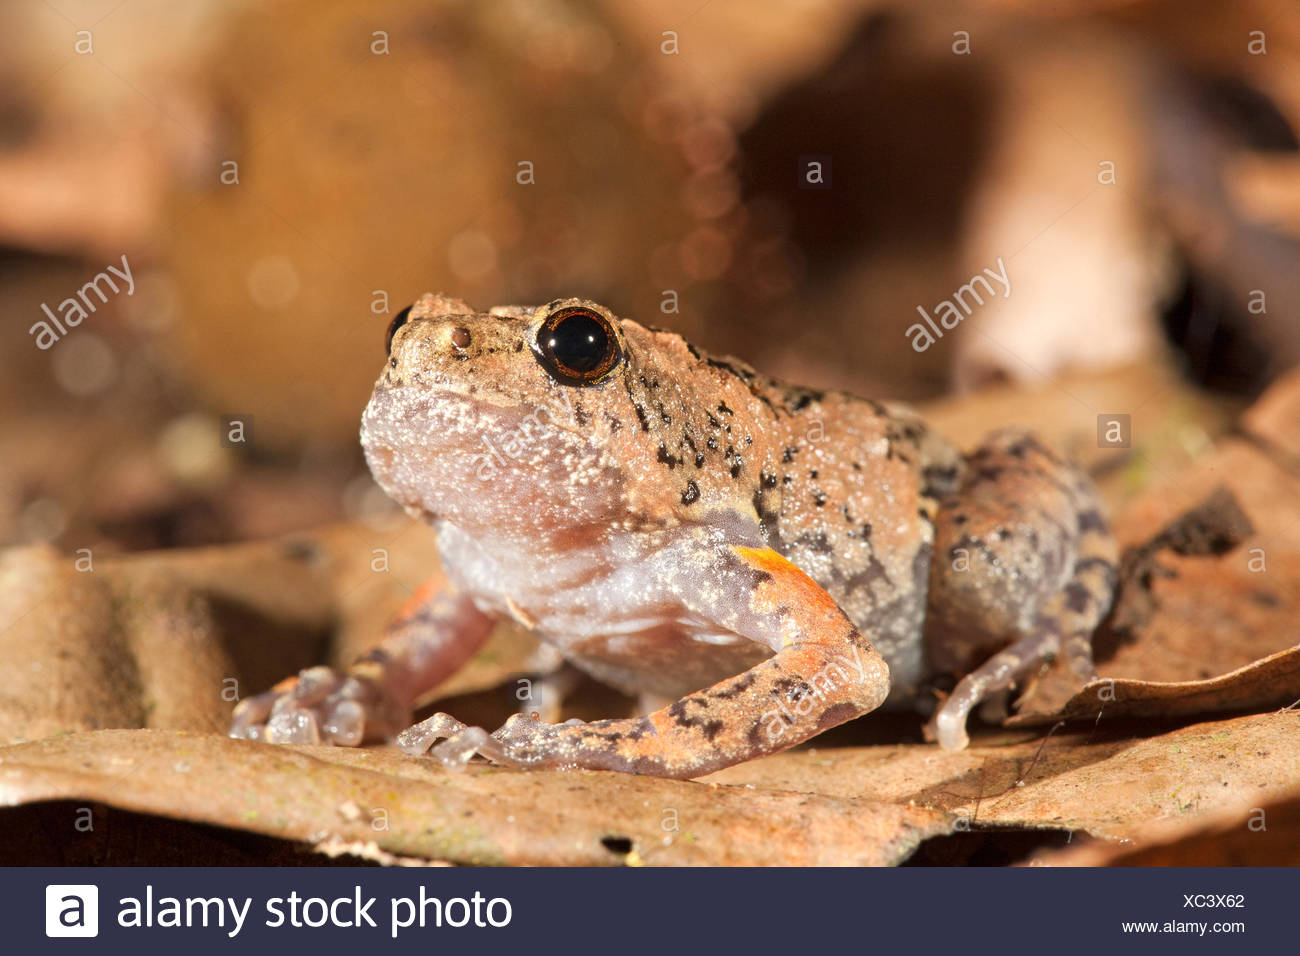 Photo of a tree hole frog, they lay their eggs in tree holes, males call from tree holes so the females can locate them - Stock Image